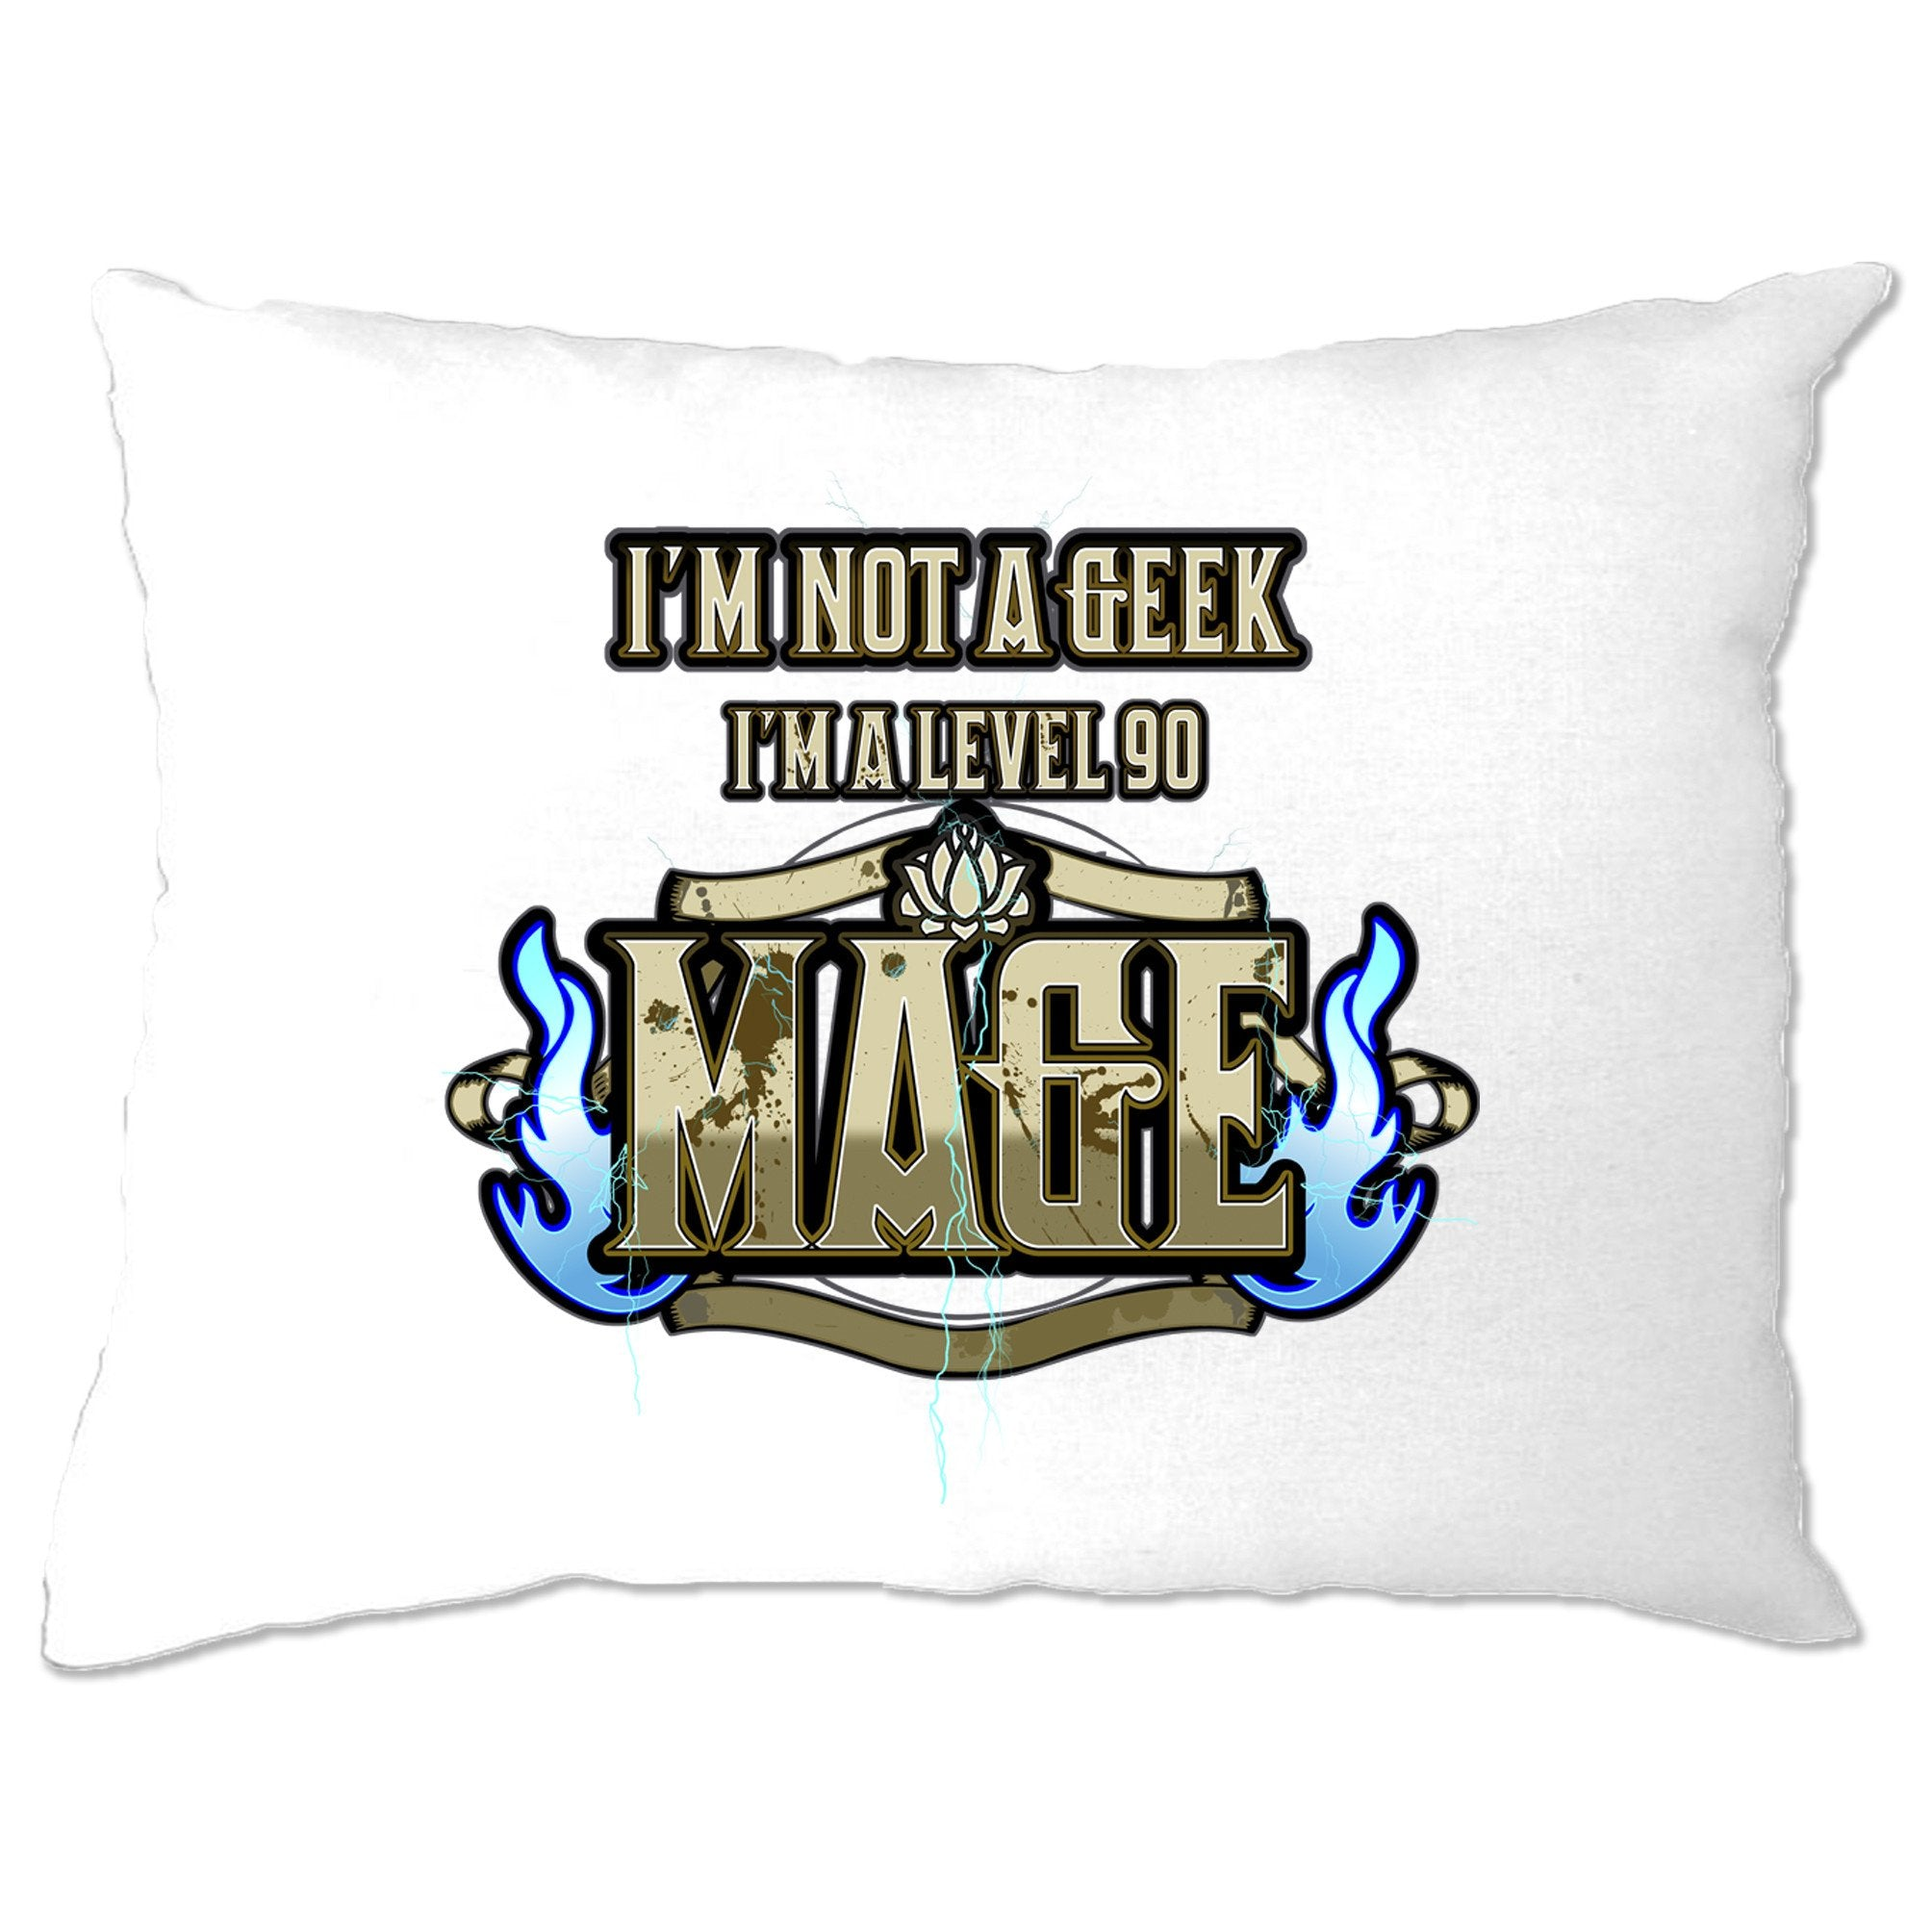 I'm Not A Geek Pillow Case I'm A Level 90 Mage